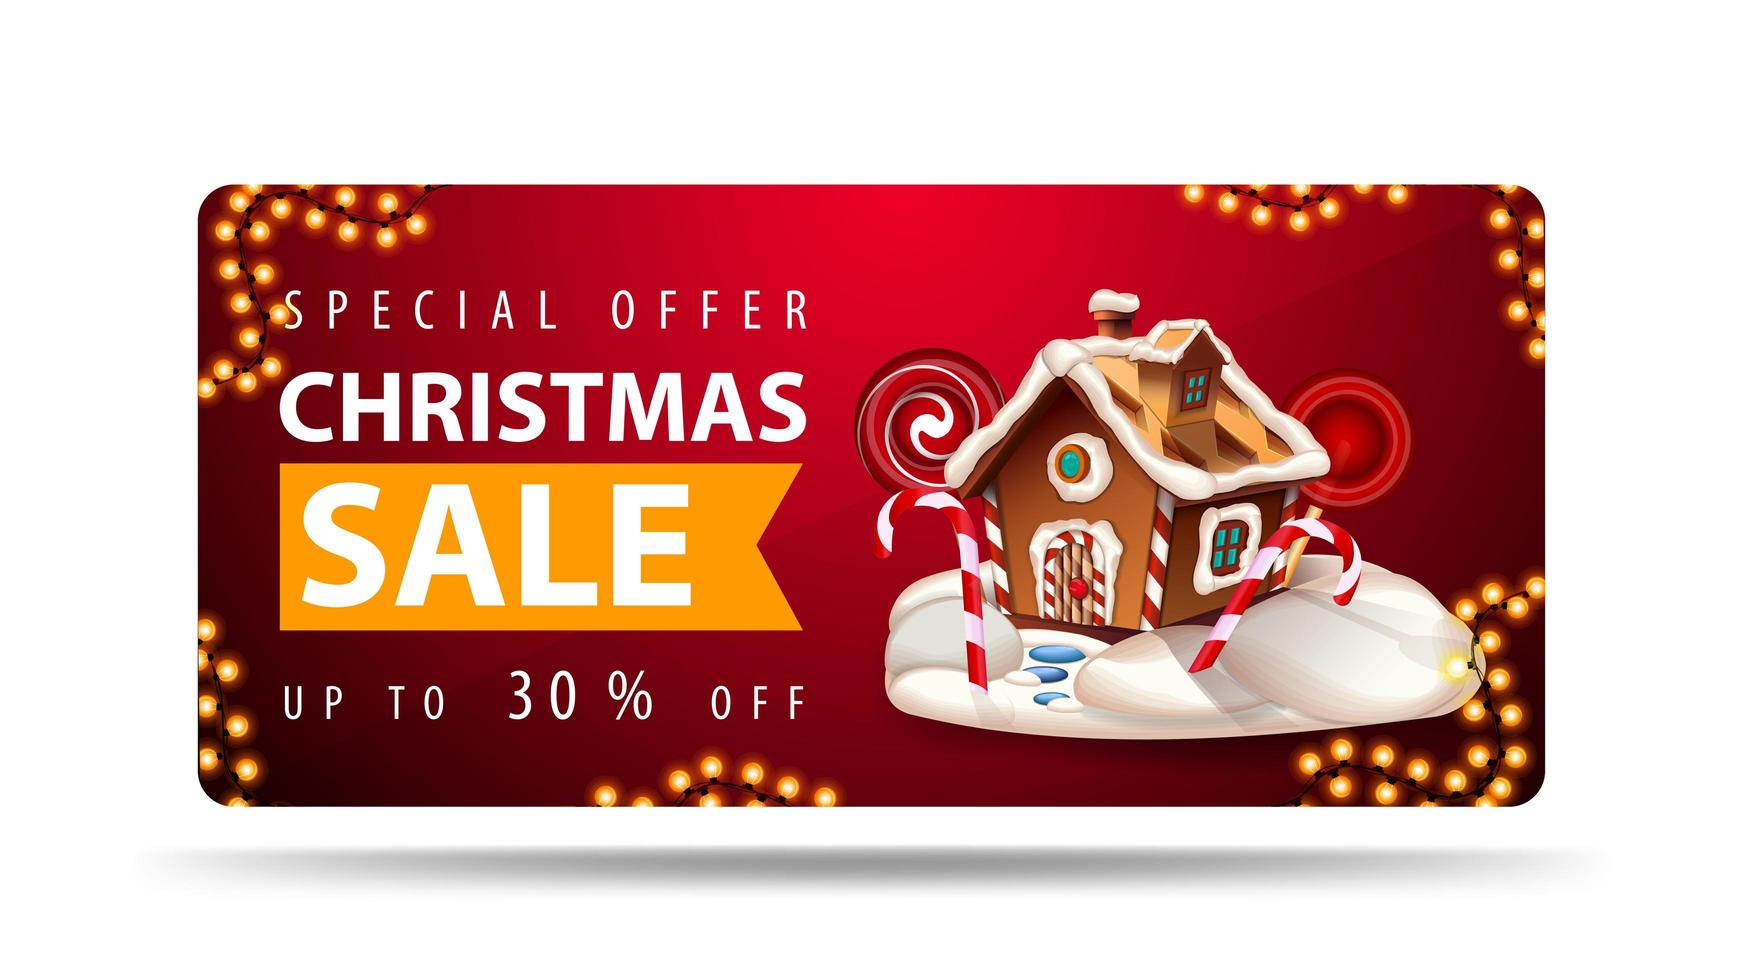 Special offer, Christmas sale, up to 30 off, red banner with Christmas gingerbread house, orange ribbon with offer and Christmas gingerbread house vector